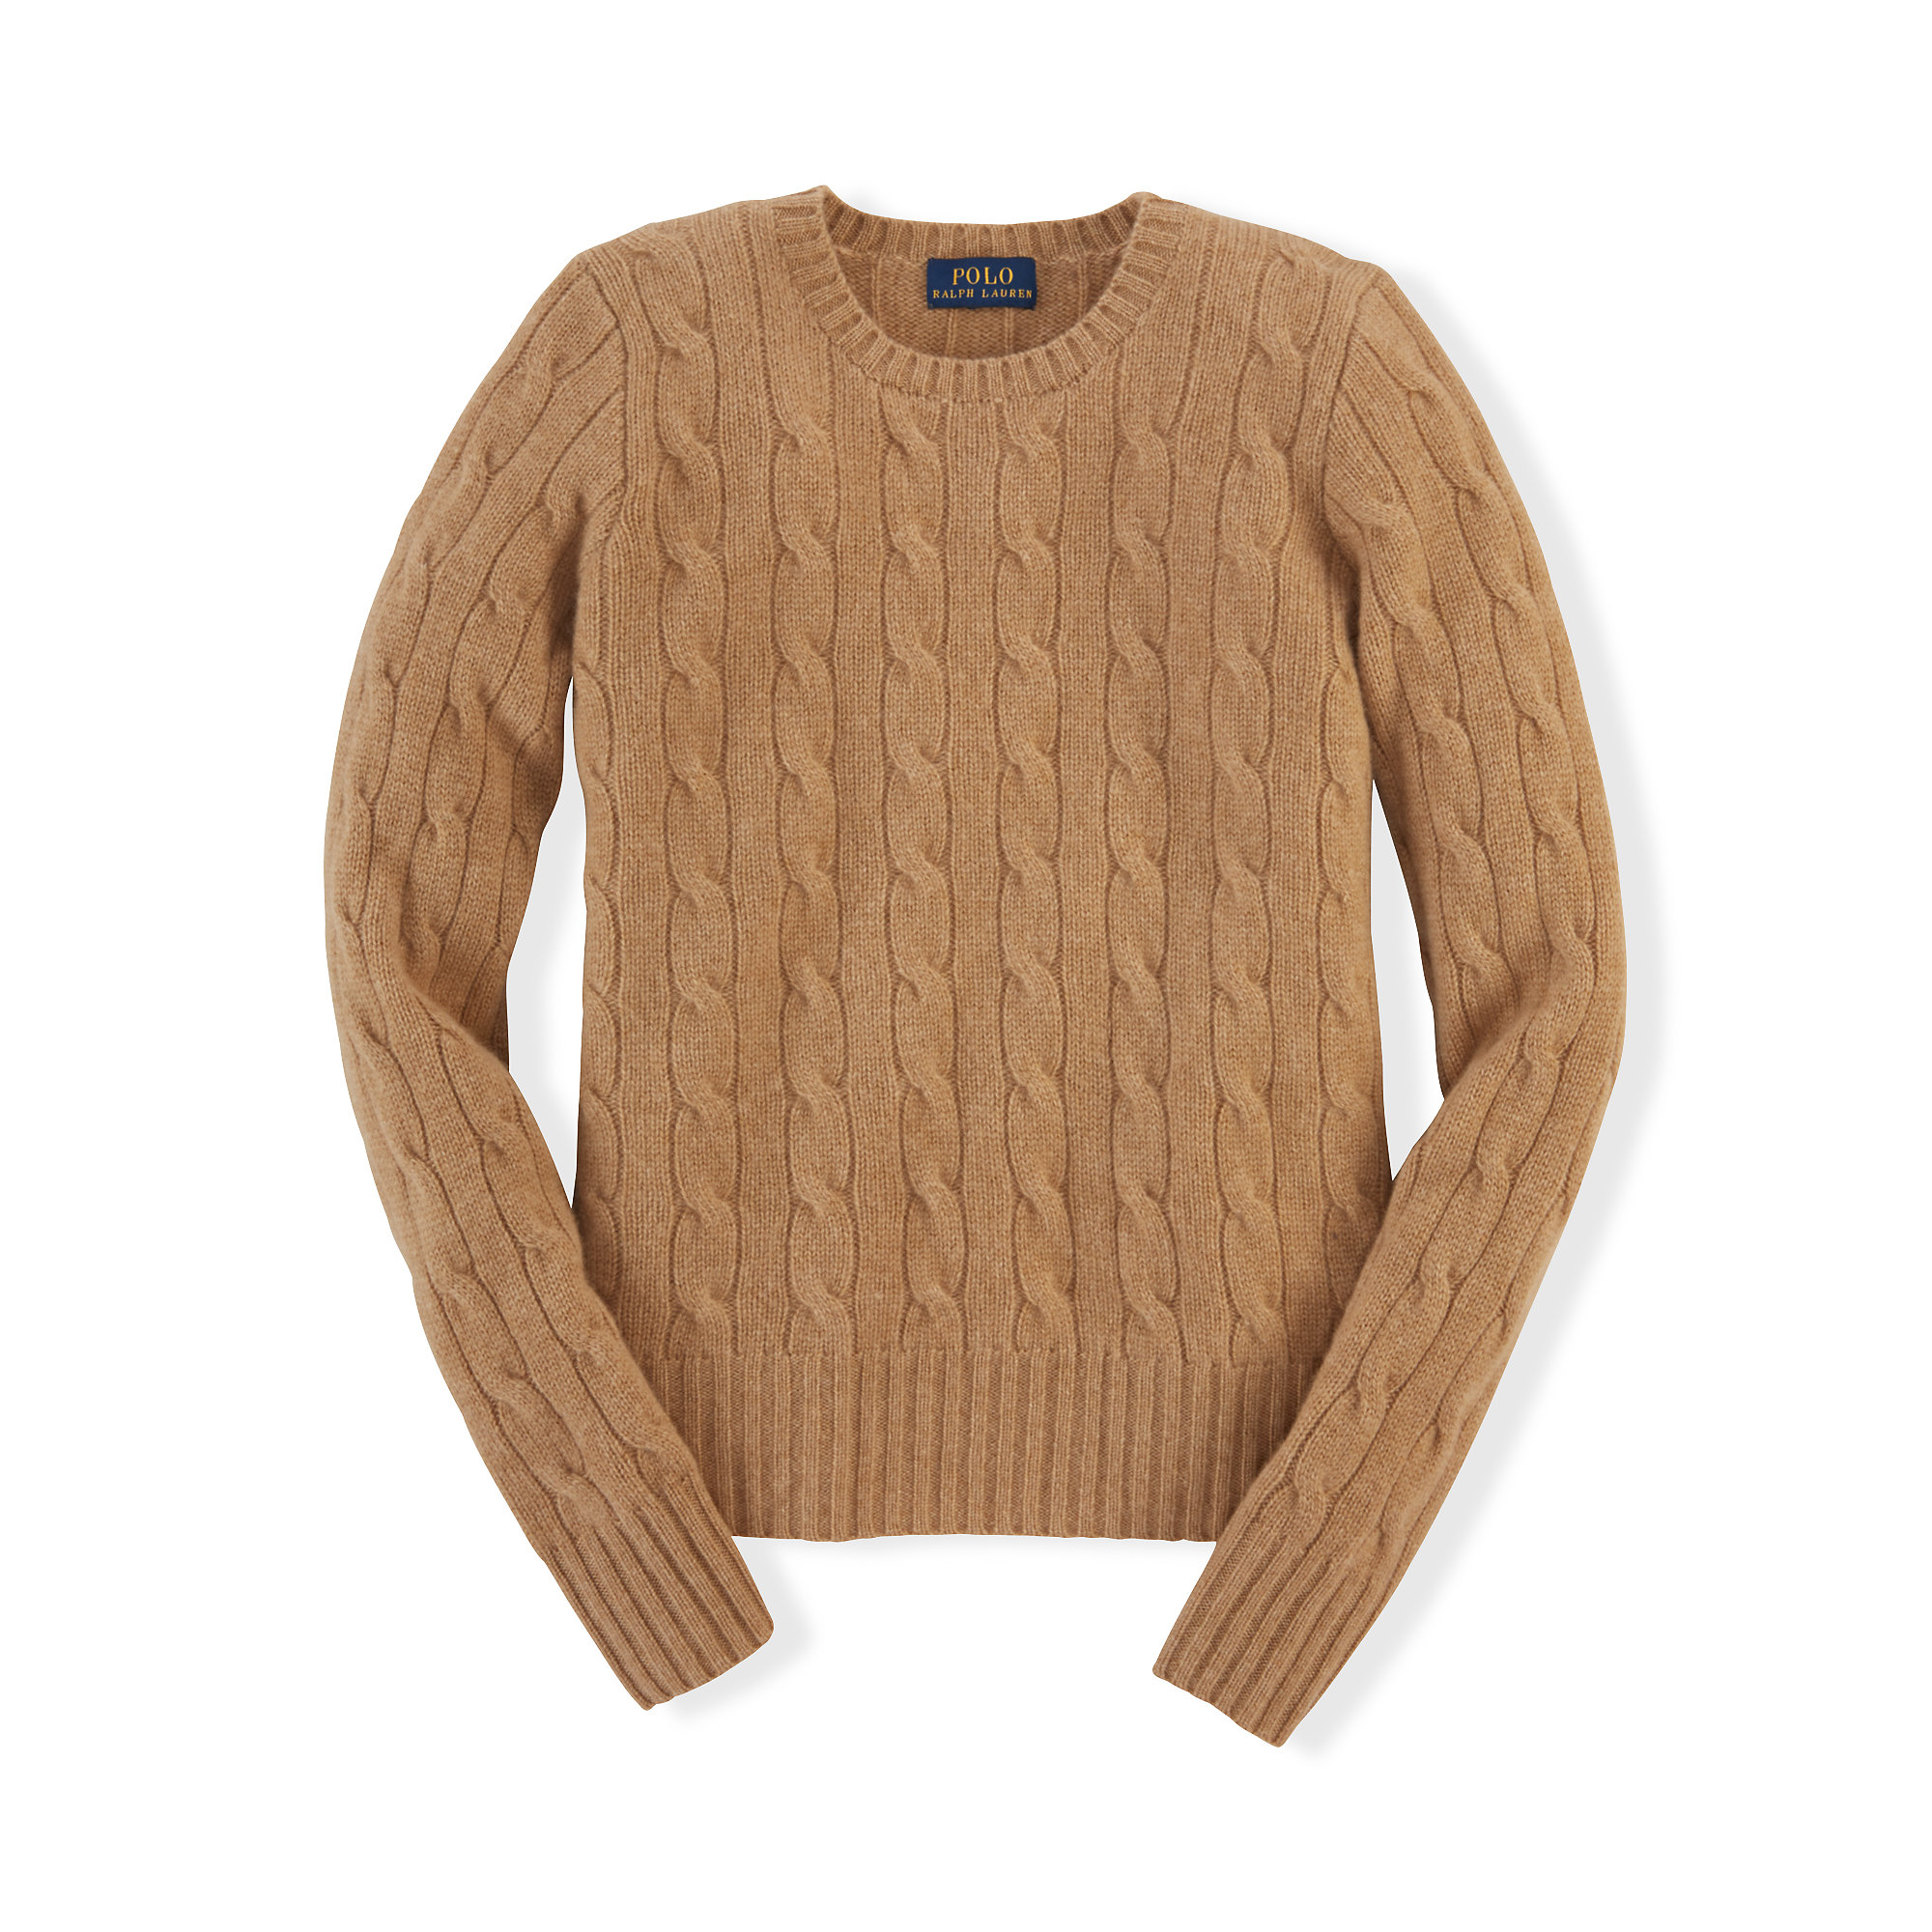 Ralph lauren Cable-knit Cashmere Sweater in Brown | Lyst